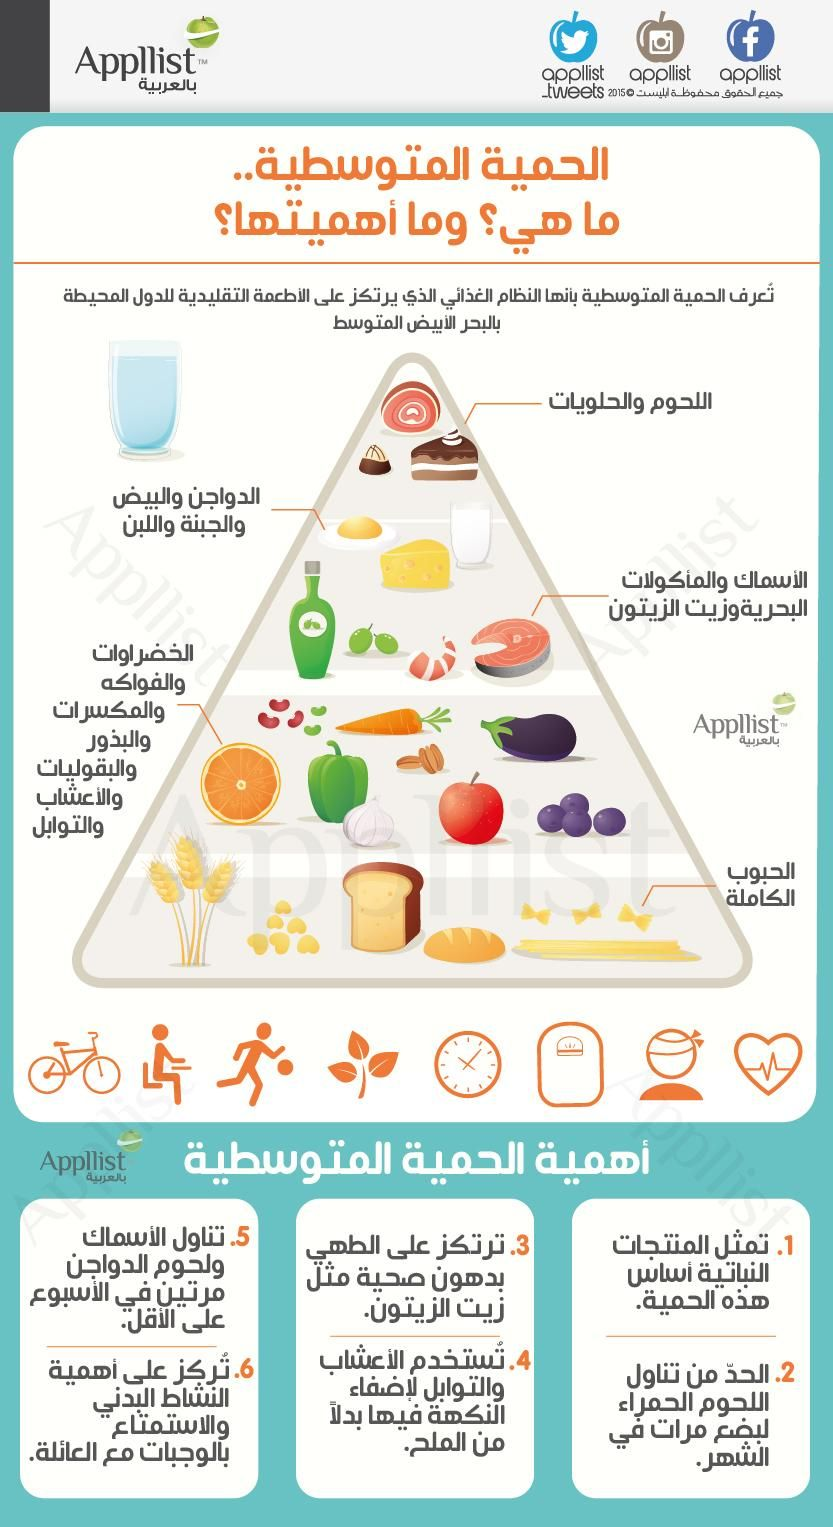 ابليست بالعربية On Twitter Health And Nutrition Health Facts Food Health Diet